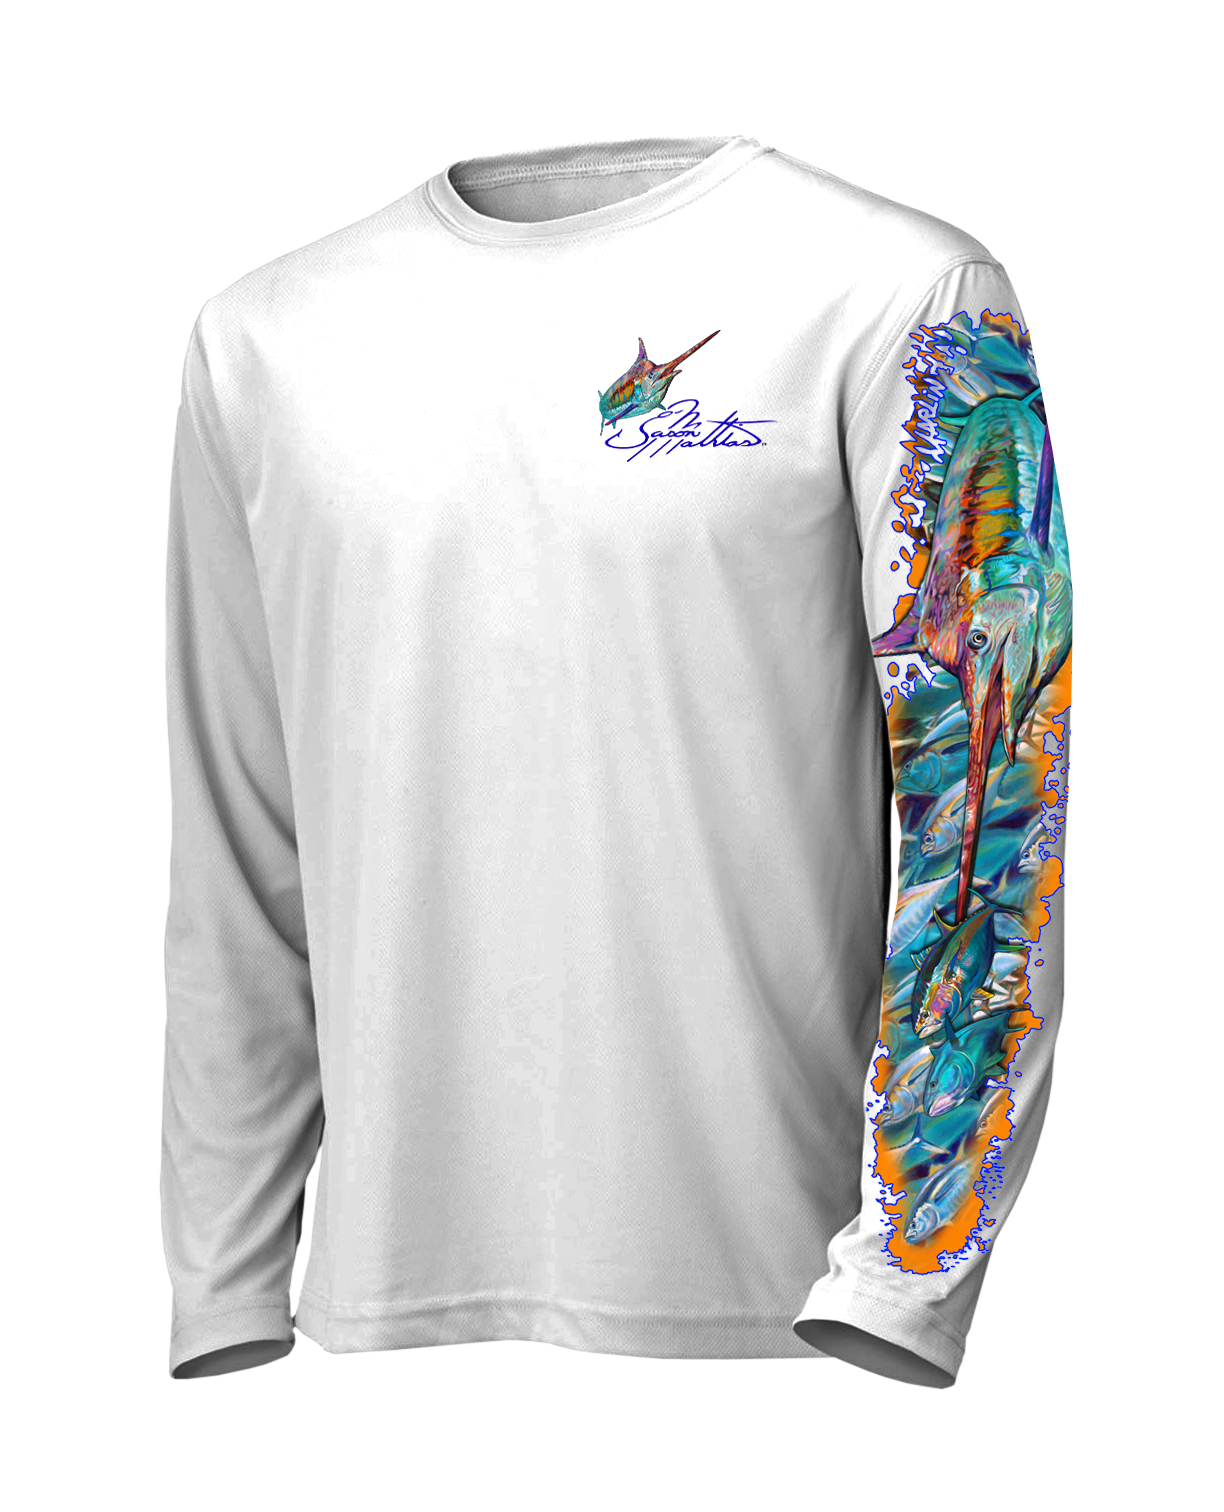 jason-mathias-shirt-line-front-marlin.png